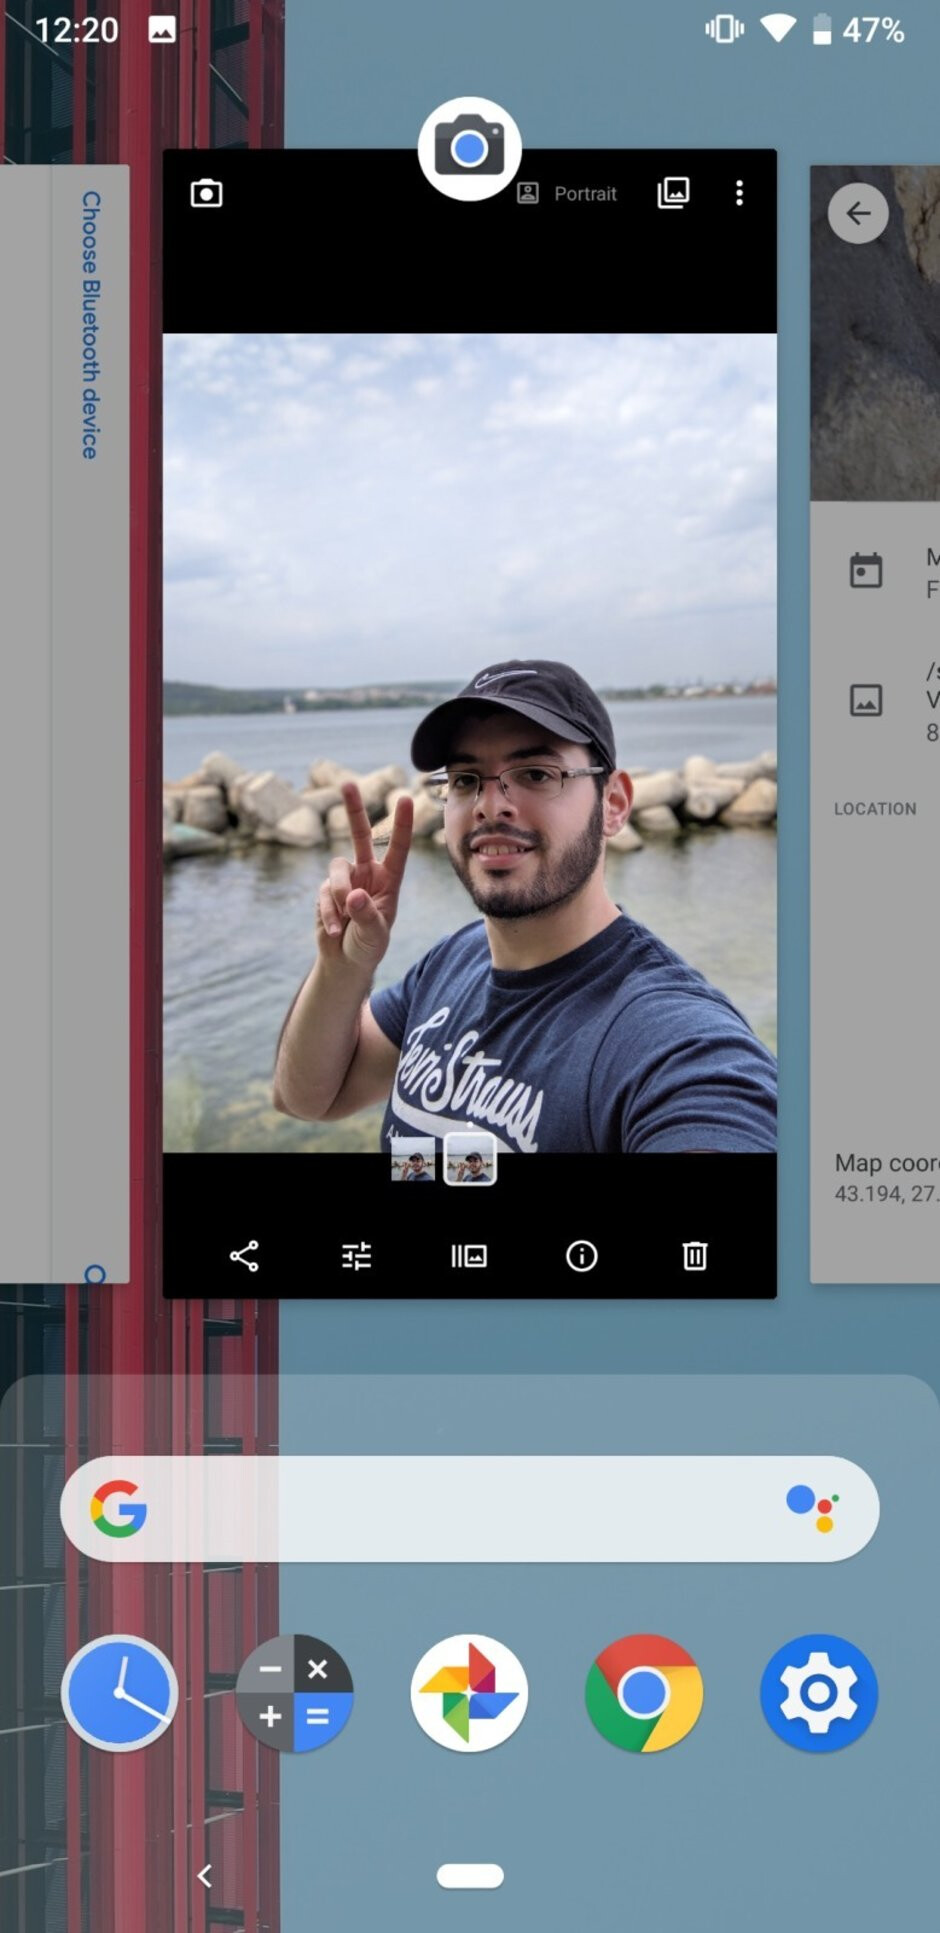 Android 9 Pie running on Pixel 3a - Google Pixel 3a & 3a XL Review